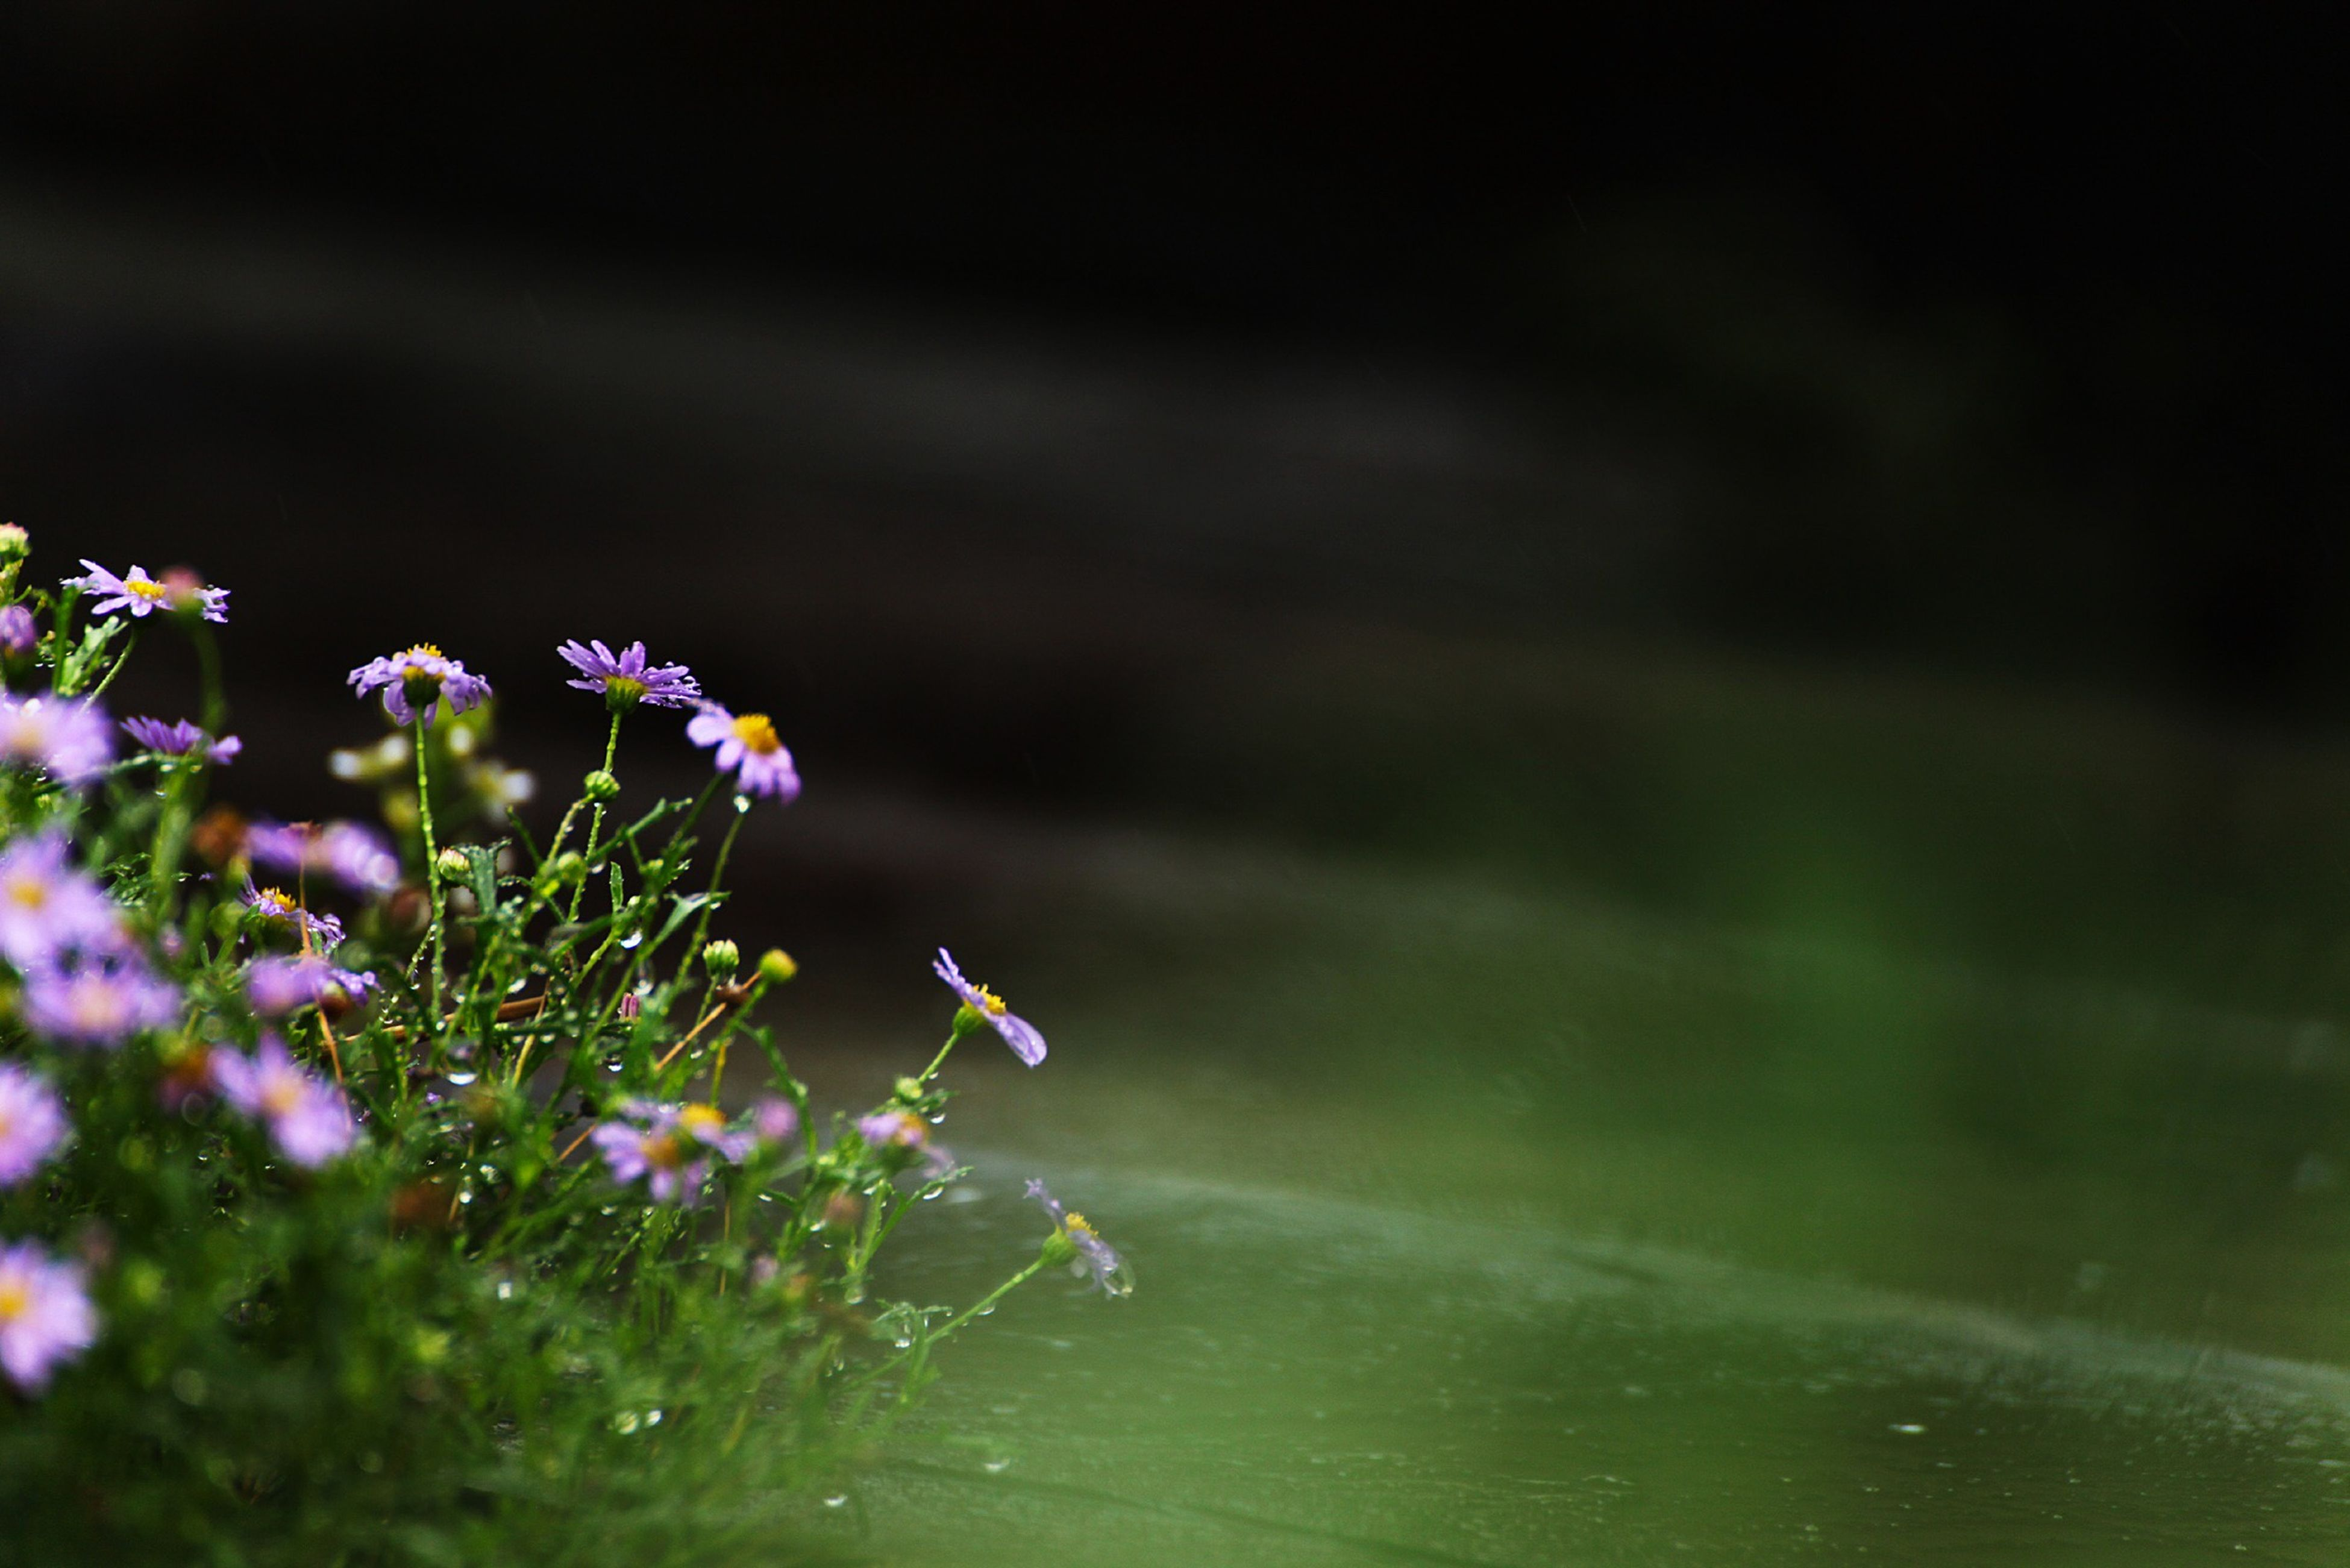 flower, fragility, freshness, growth, beauty in nature, petal, focus on foreground, plant, close-up, nature, blooming, flower head, selective focus, stem, purple, in bloom, outdoors, wildflower, day, botany